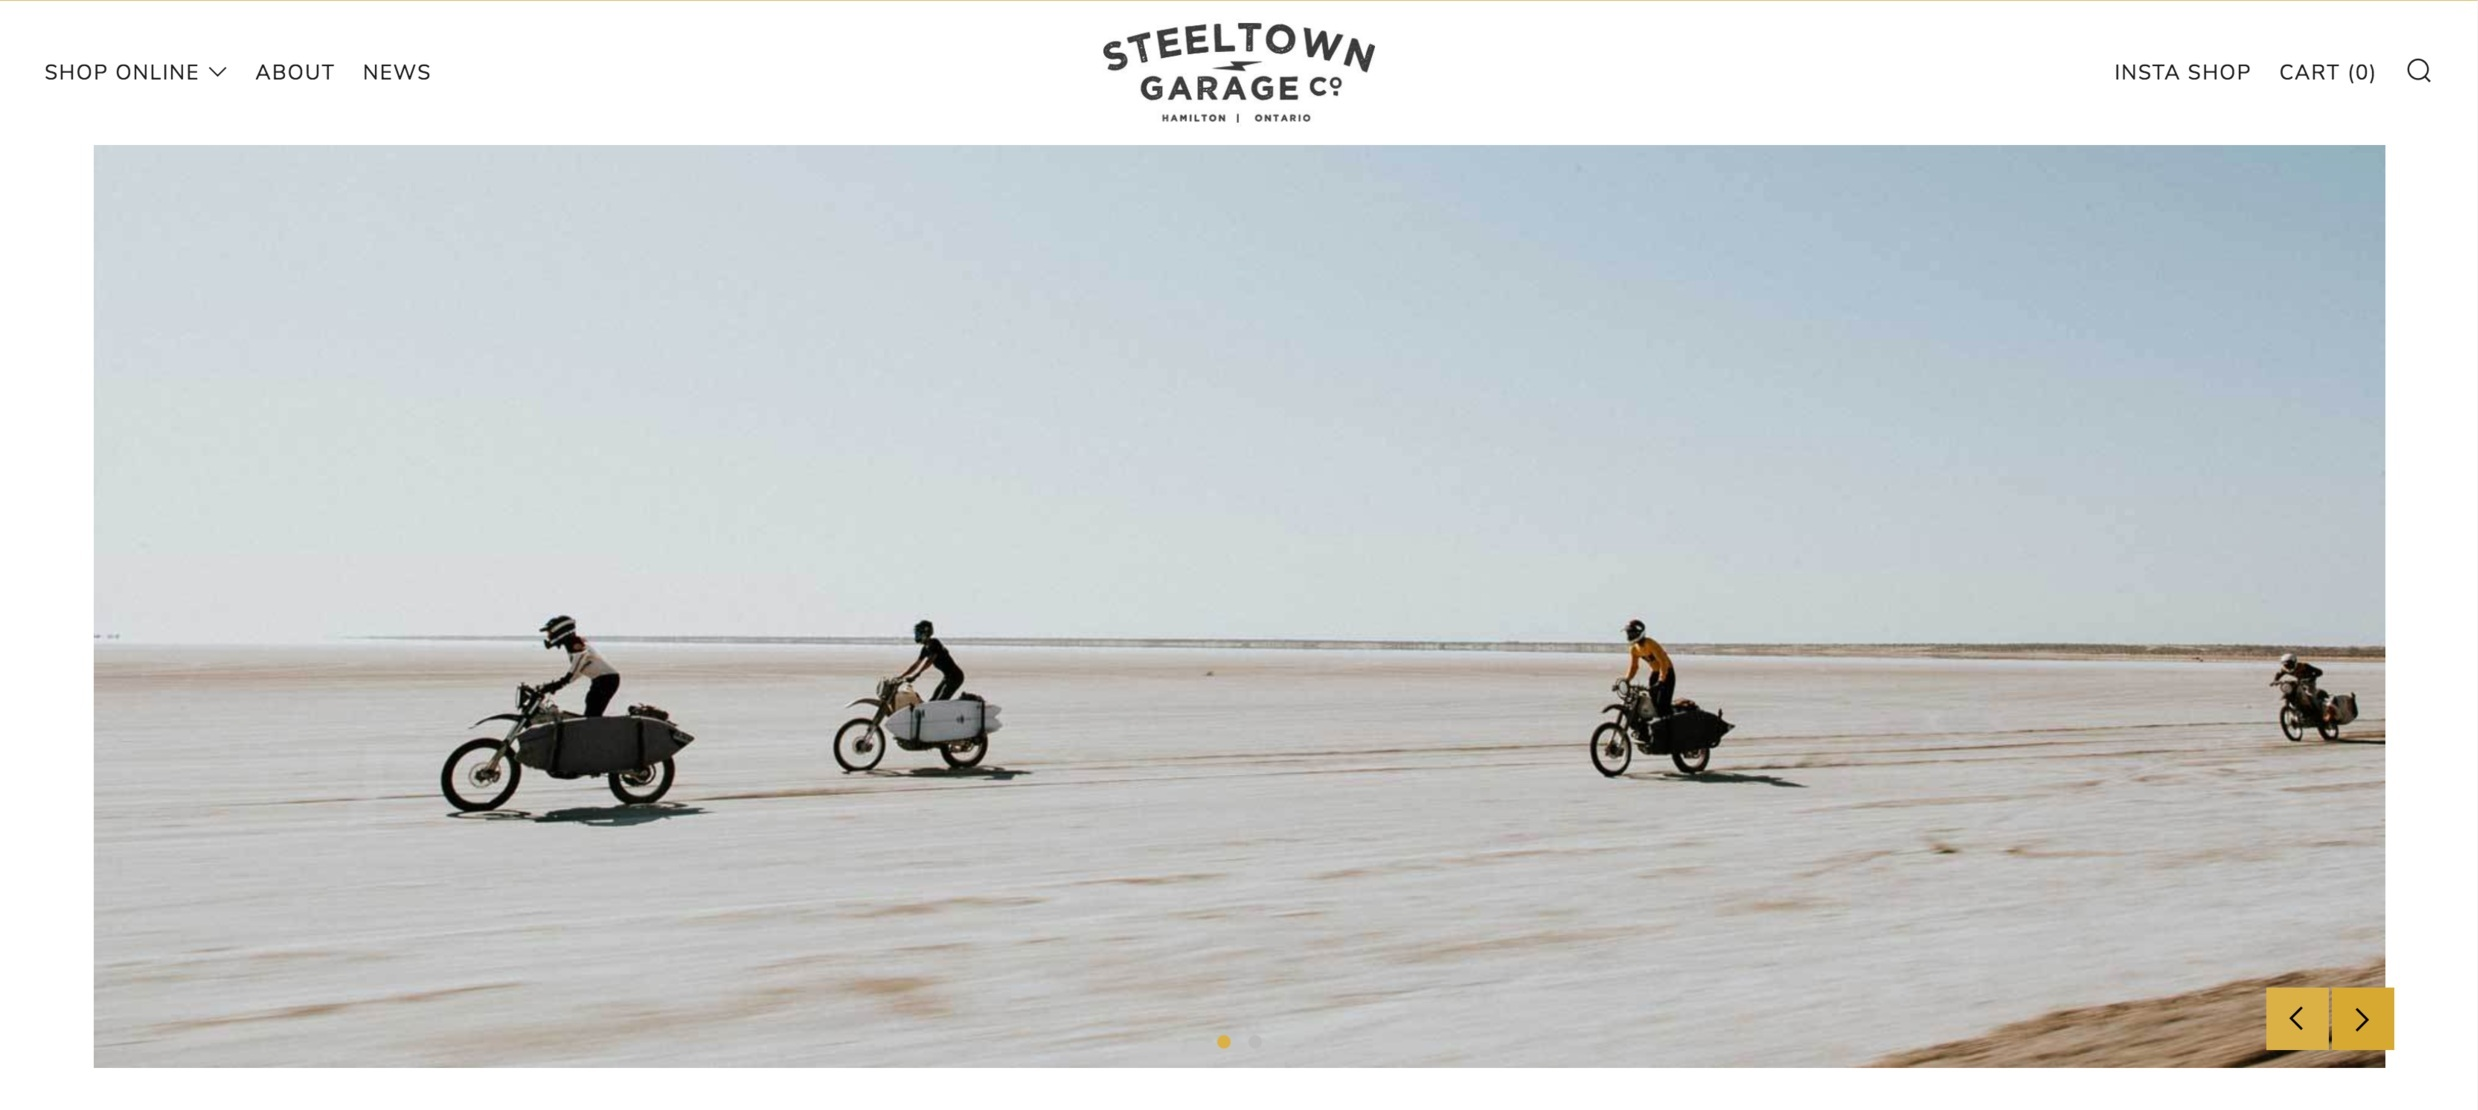 "The Shopify slideshow images used by ""Steeltown Garage Co"" guys are simply stunning. Super stylish and show off the brand right off the bat. You don't need to think long and hard to read any messages here, just breathe that sleek air."